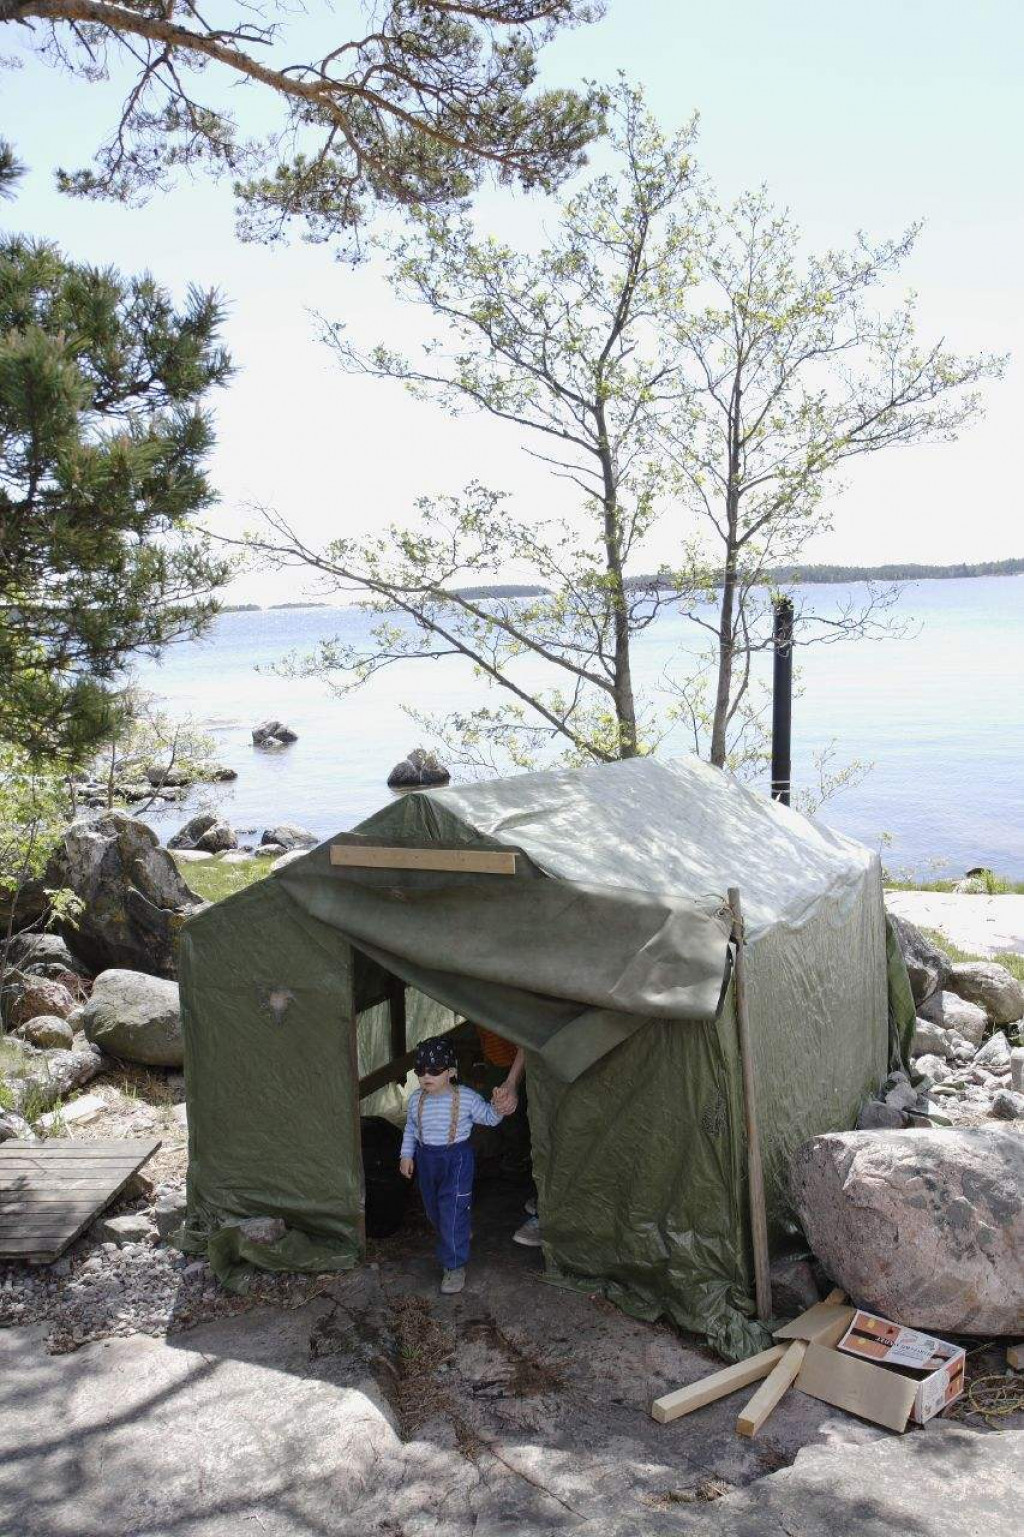 How to Choose the Right Tent for Your Camping Trip